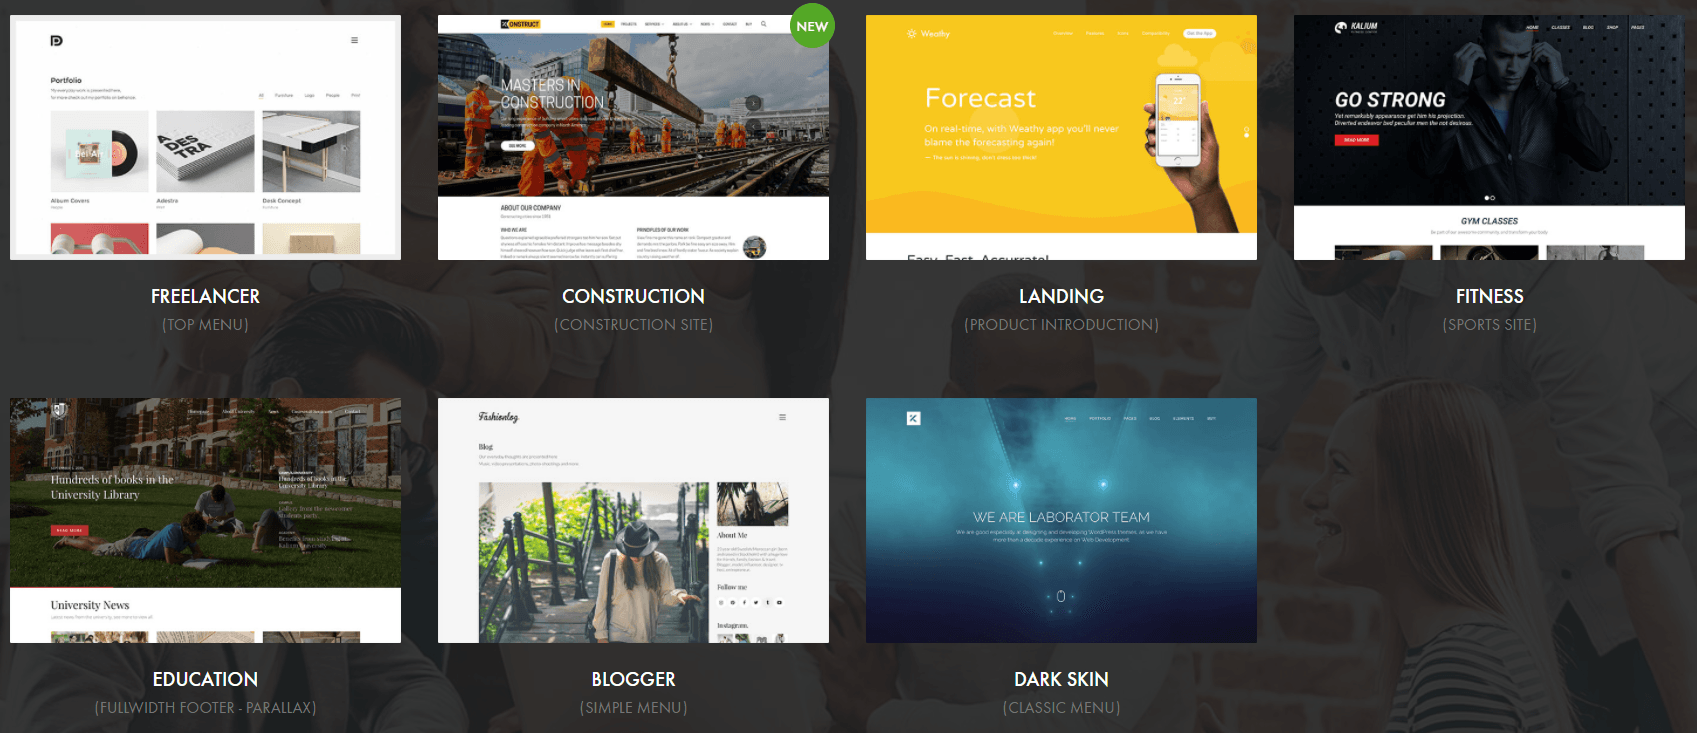 Image of blog theme showing several categories of blog layouts